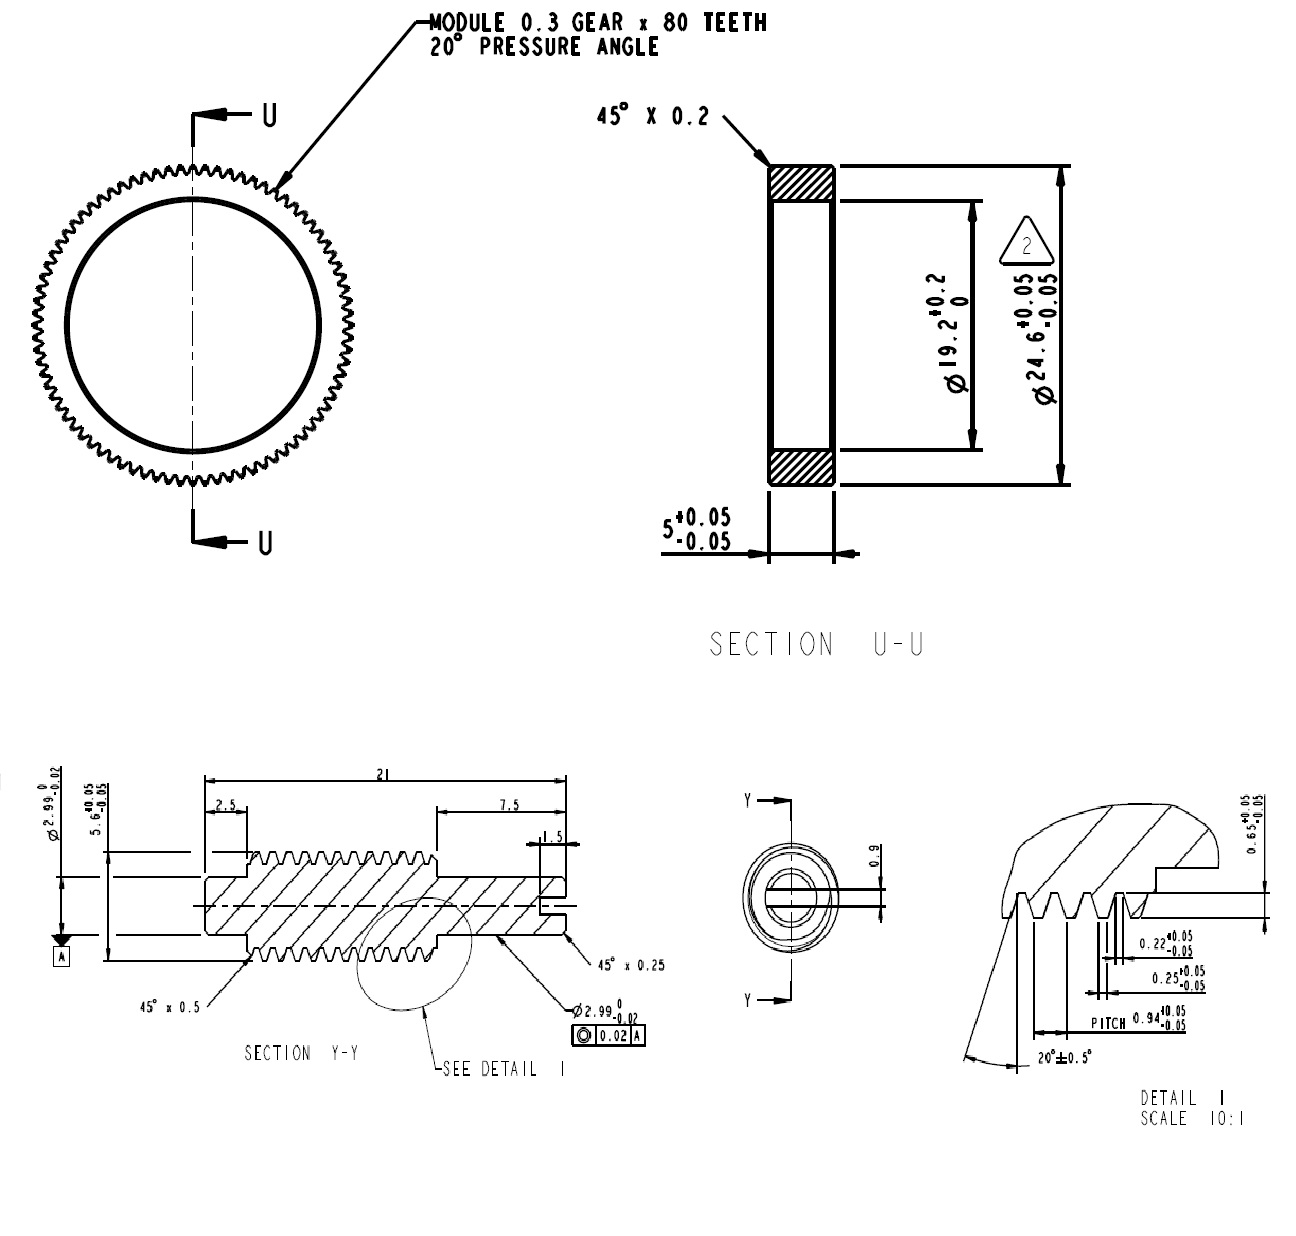 Worm Screw And Spur Gear Or Straight Cut Gear Make